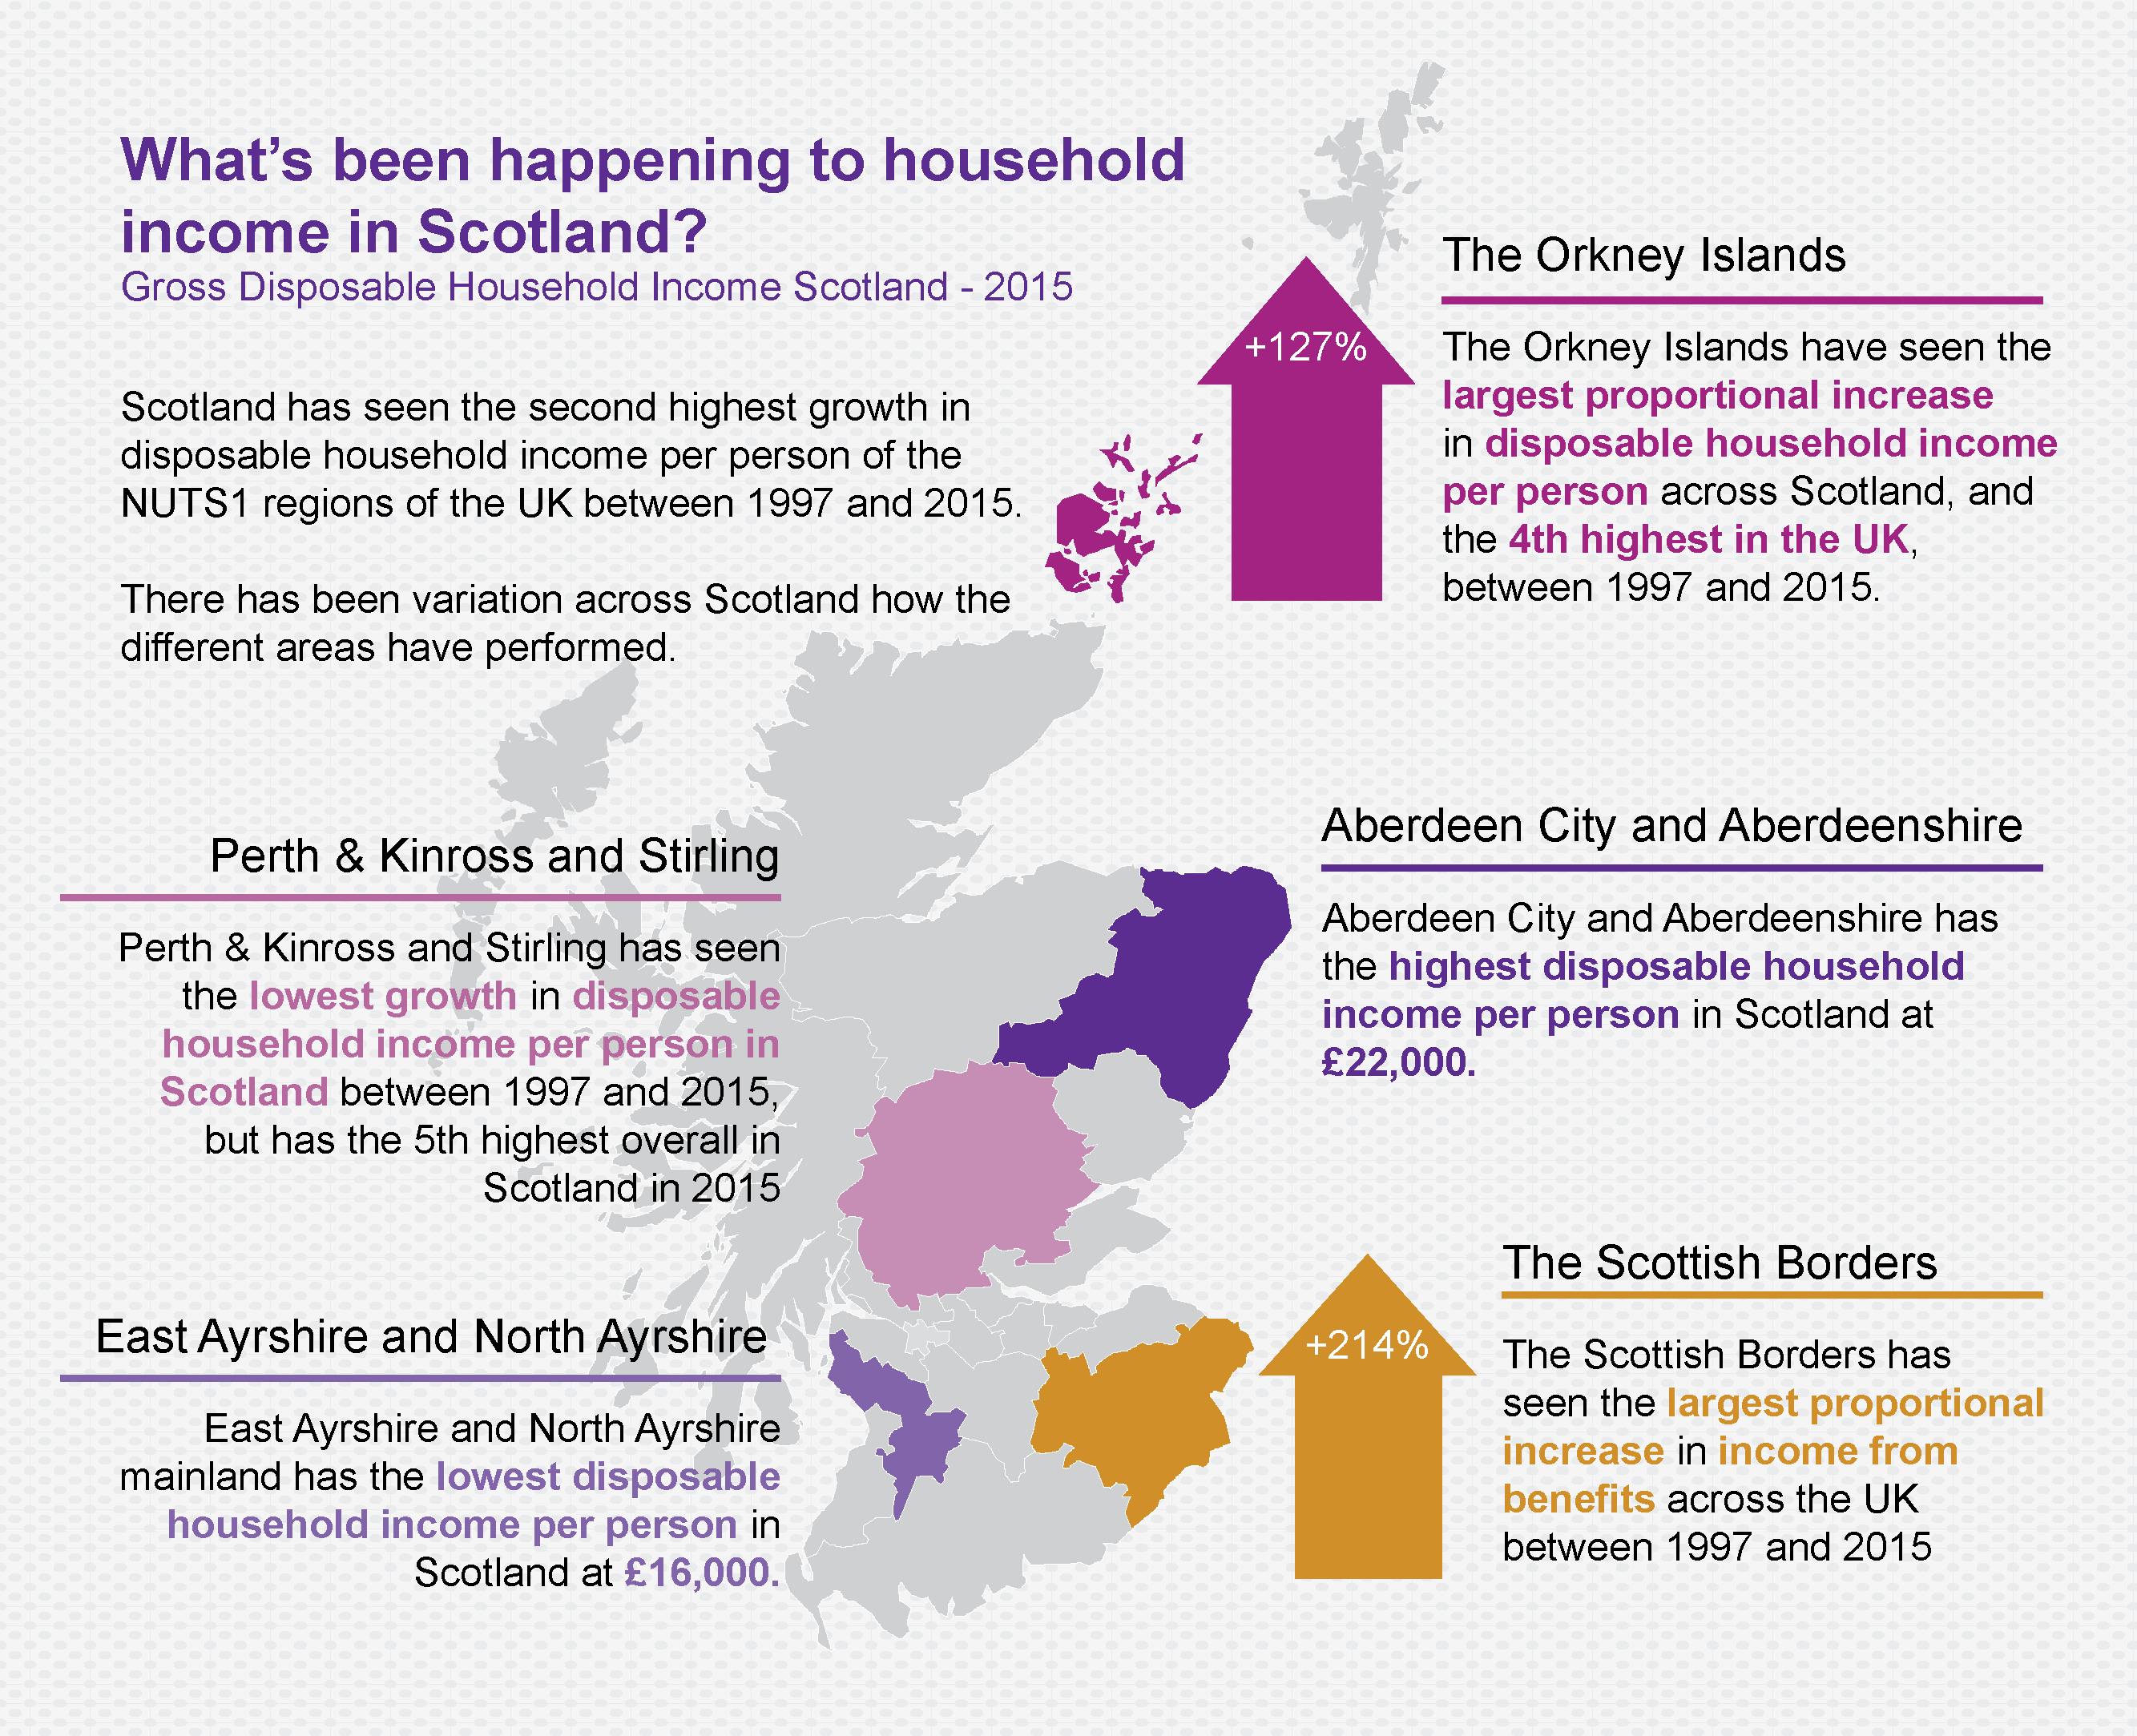 Figure 1 Whats Been Happening To Household Income In Scotland